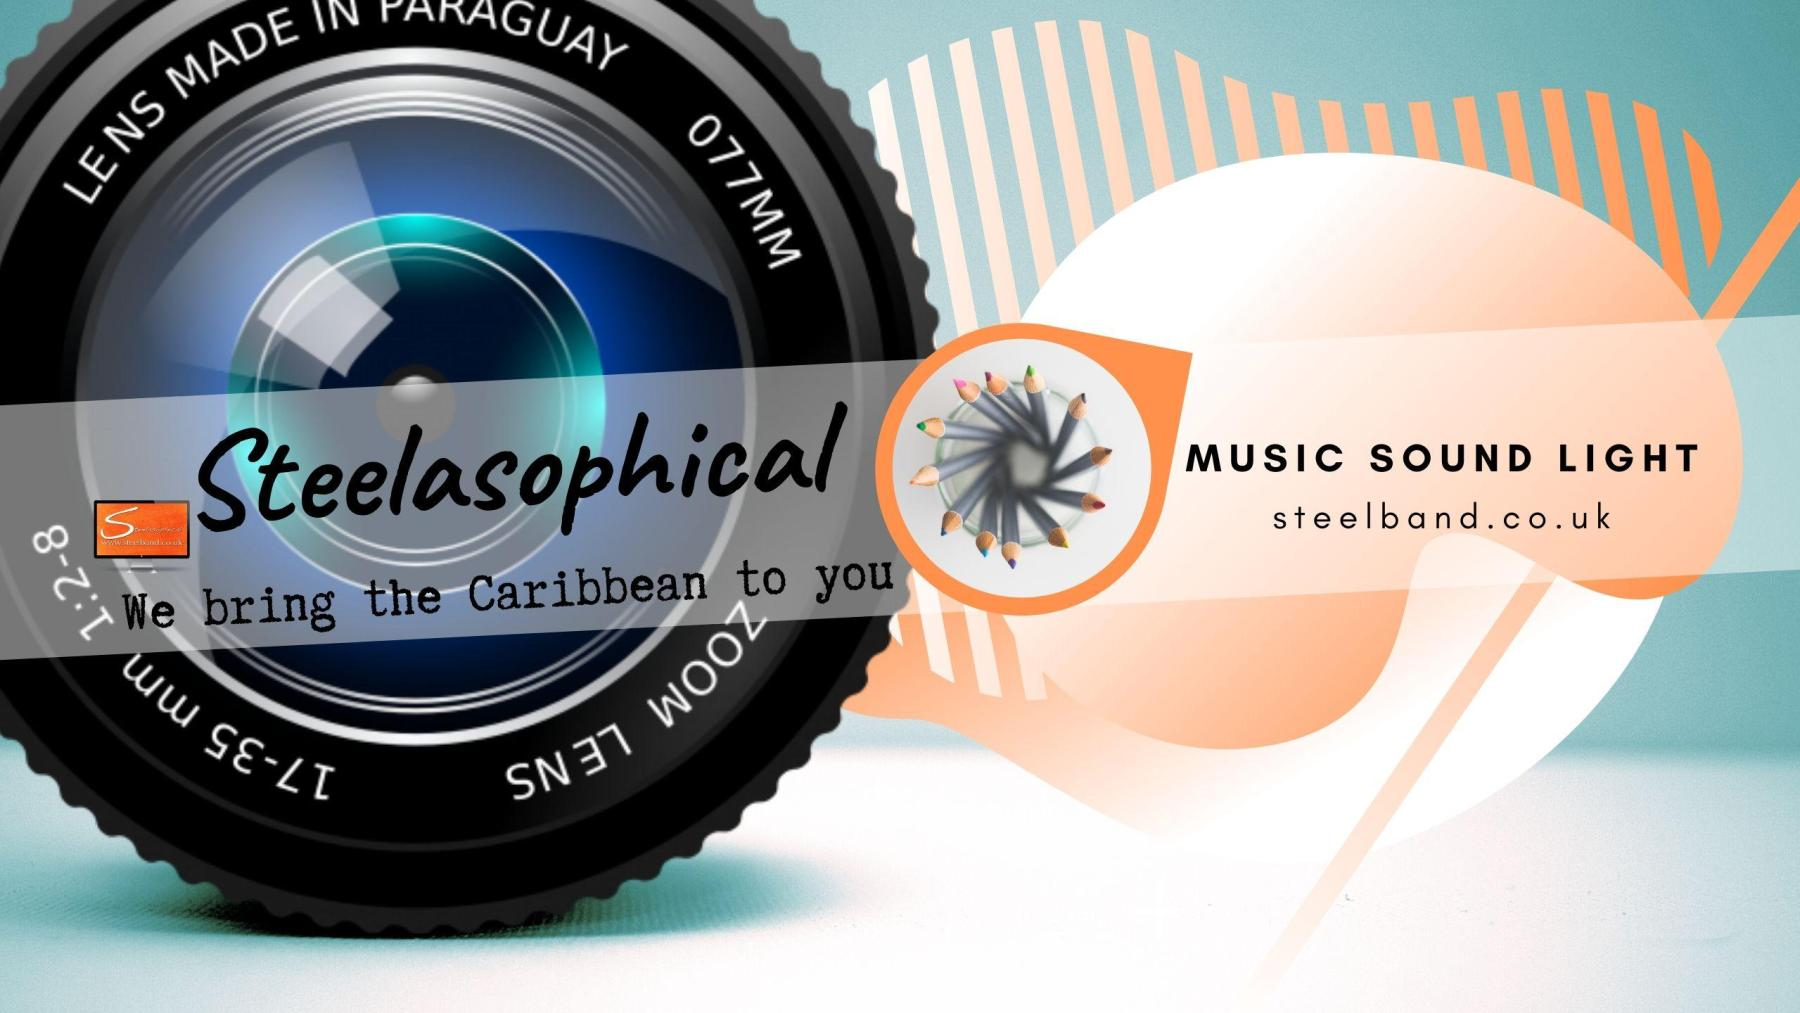 Steelasophical SteelBand for Hire UK steelpans Steeldrums Caribbean Music wyywy